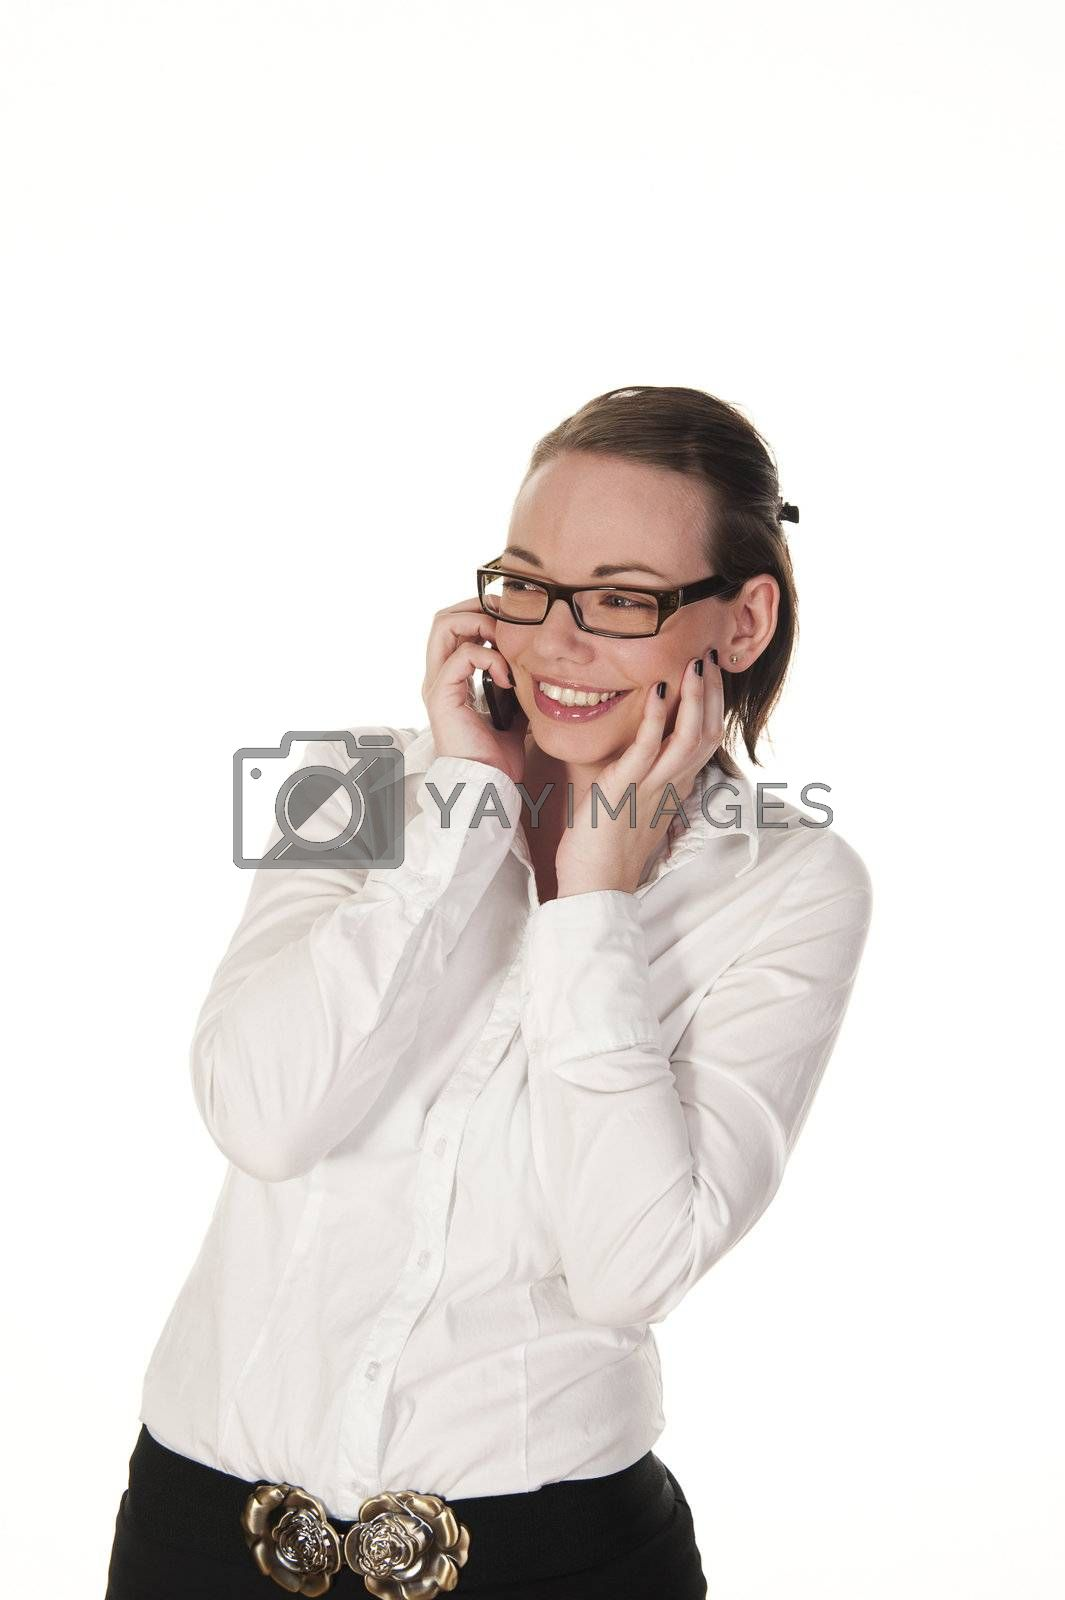 Smiling girl on the phone, isolated on white background